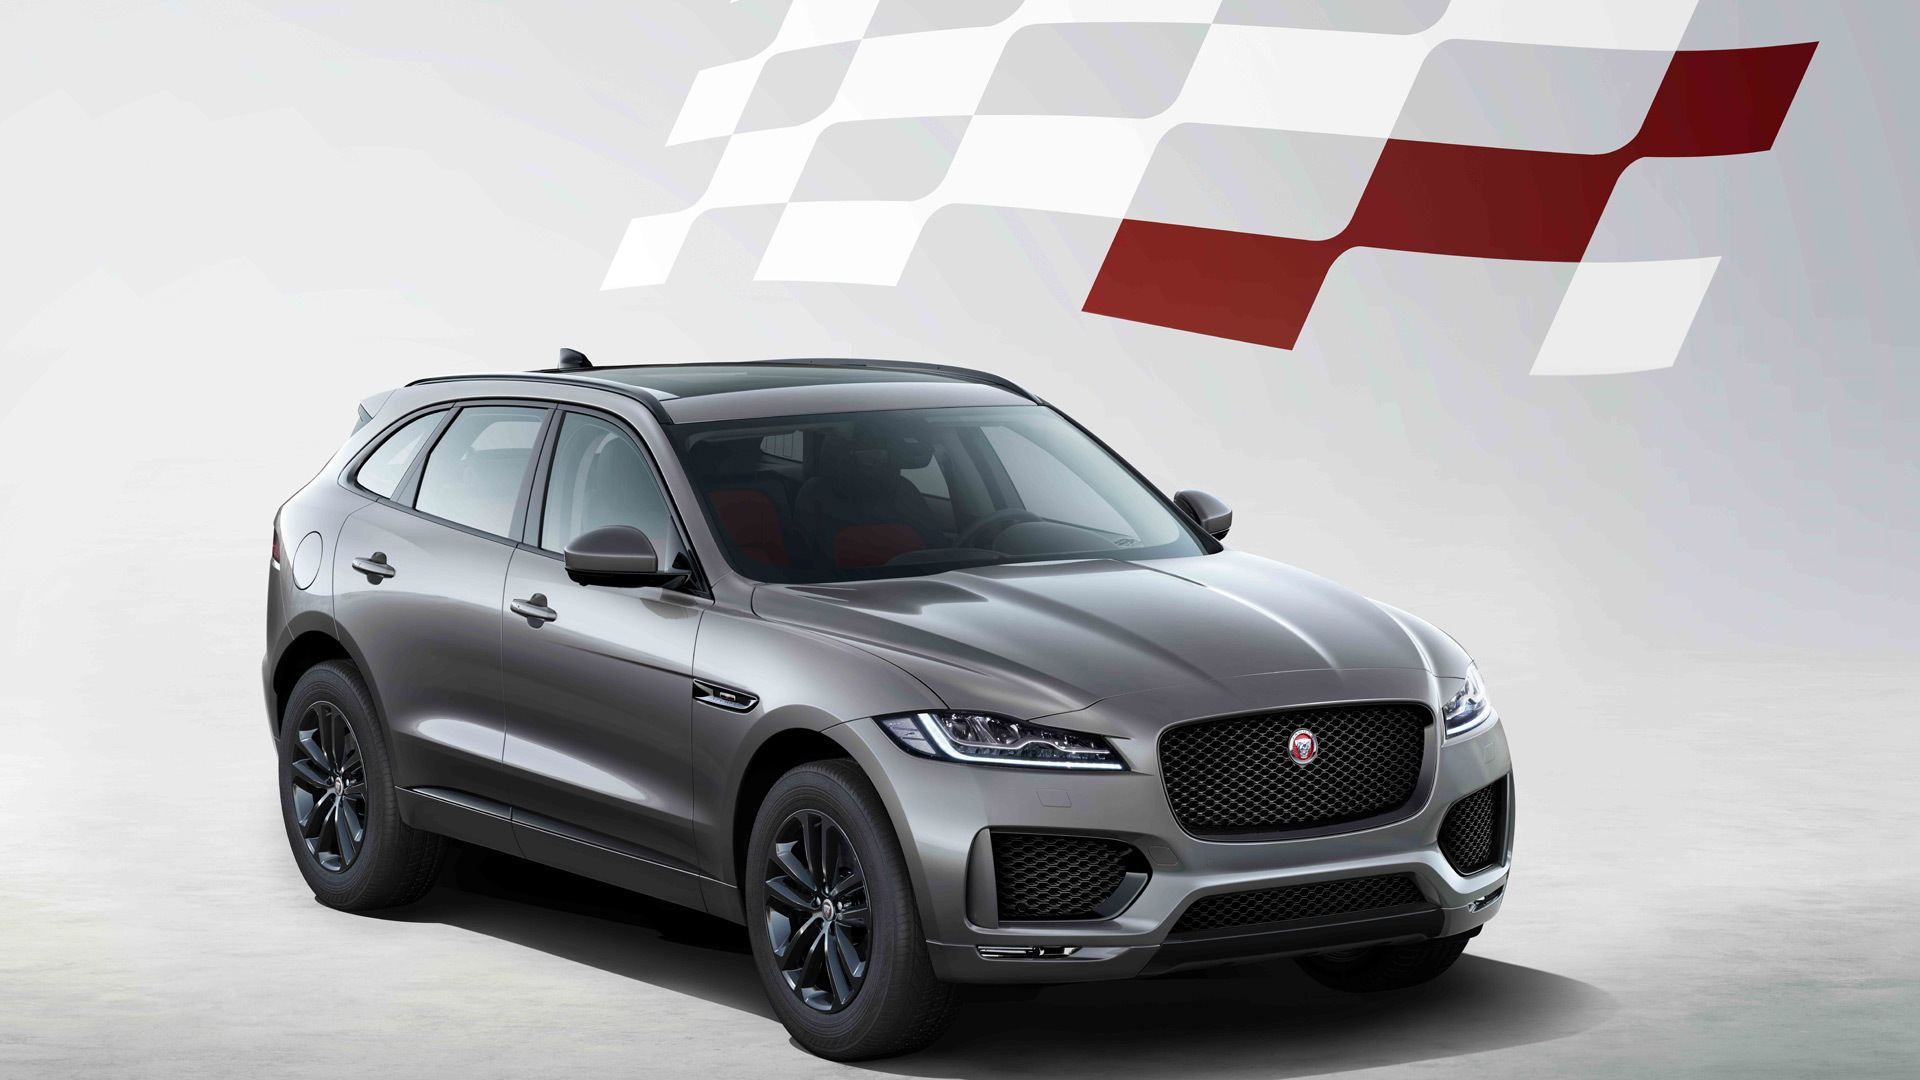 2020 Jaguar F Pace Lineup Expands With Two New Arrivals